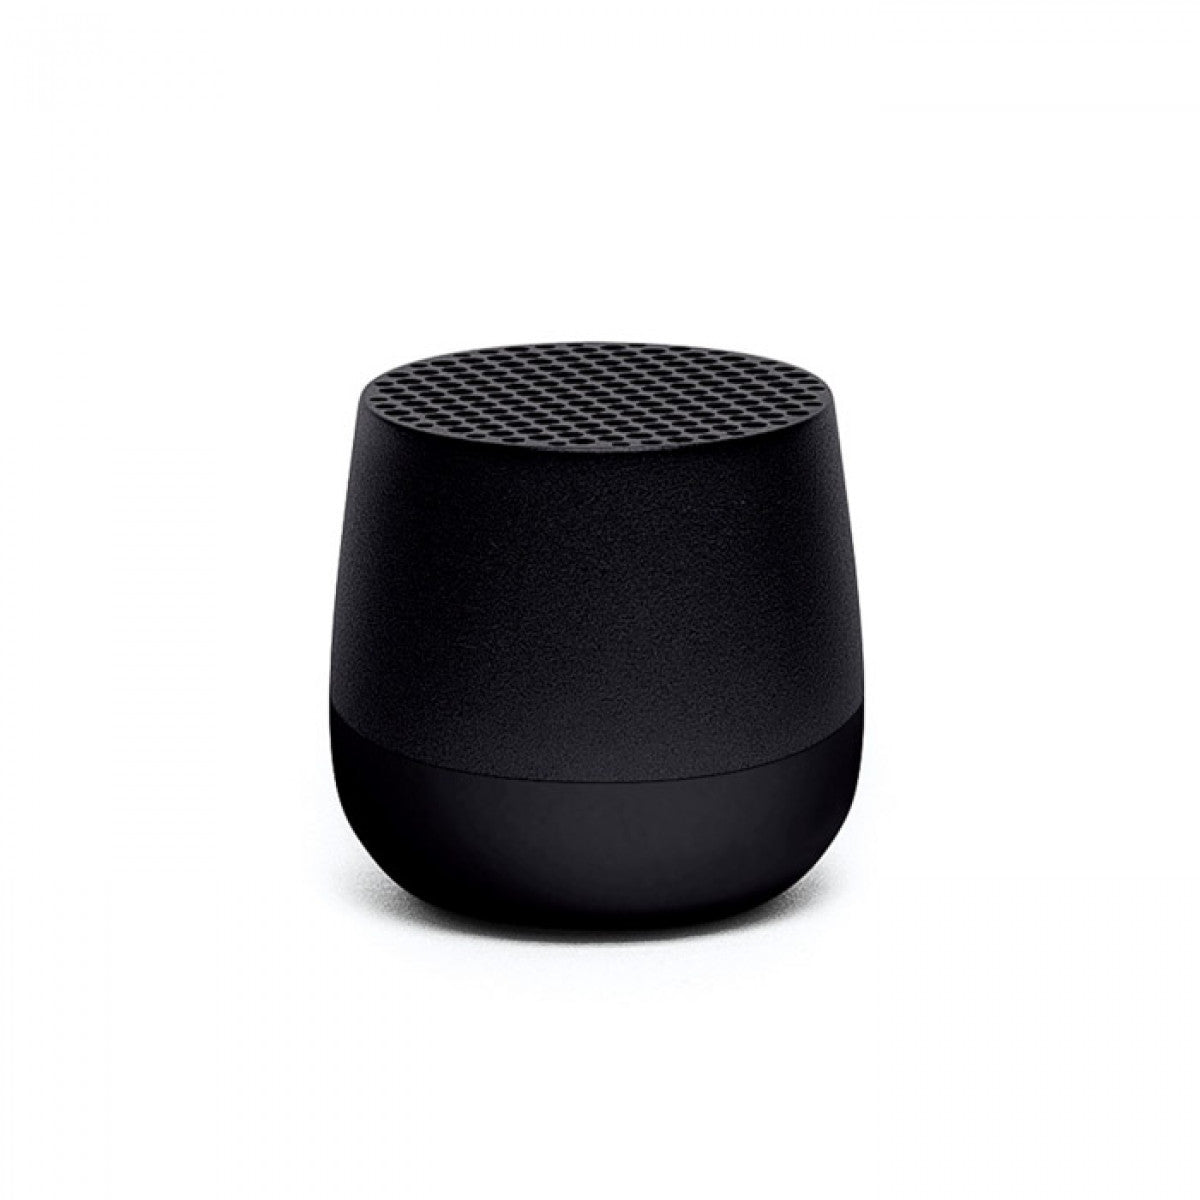 Lexon Mino Portable Bluetooth Speaker Black - 3W